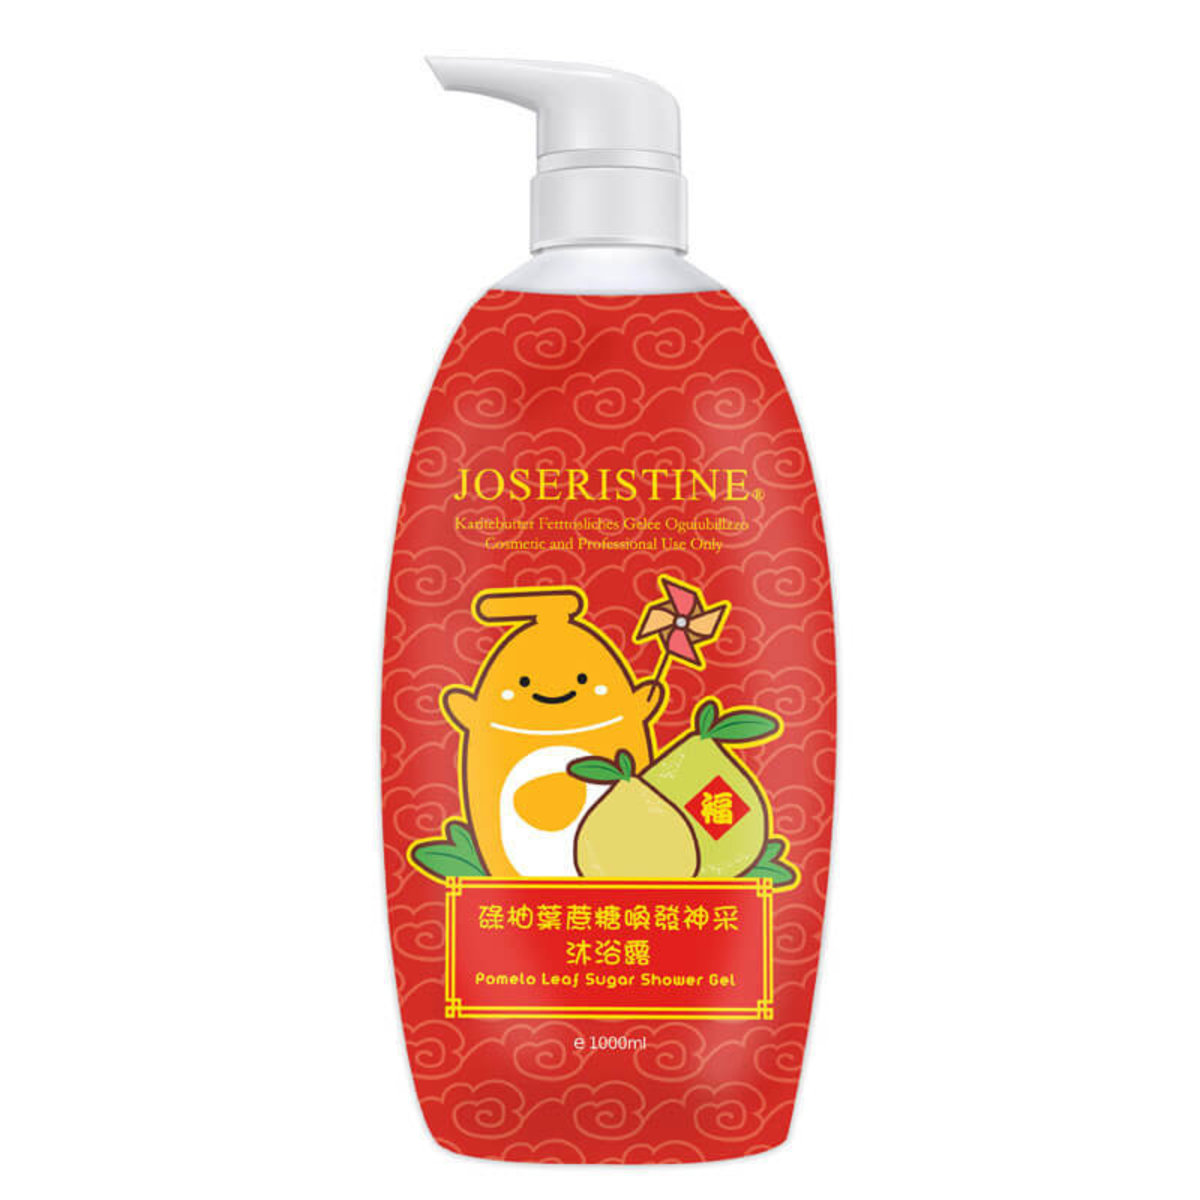 Pomelo Leaf Sugar Shower Gel